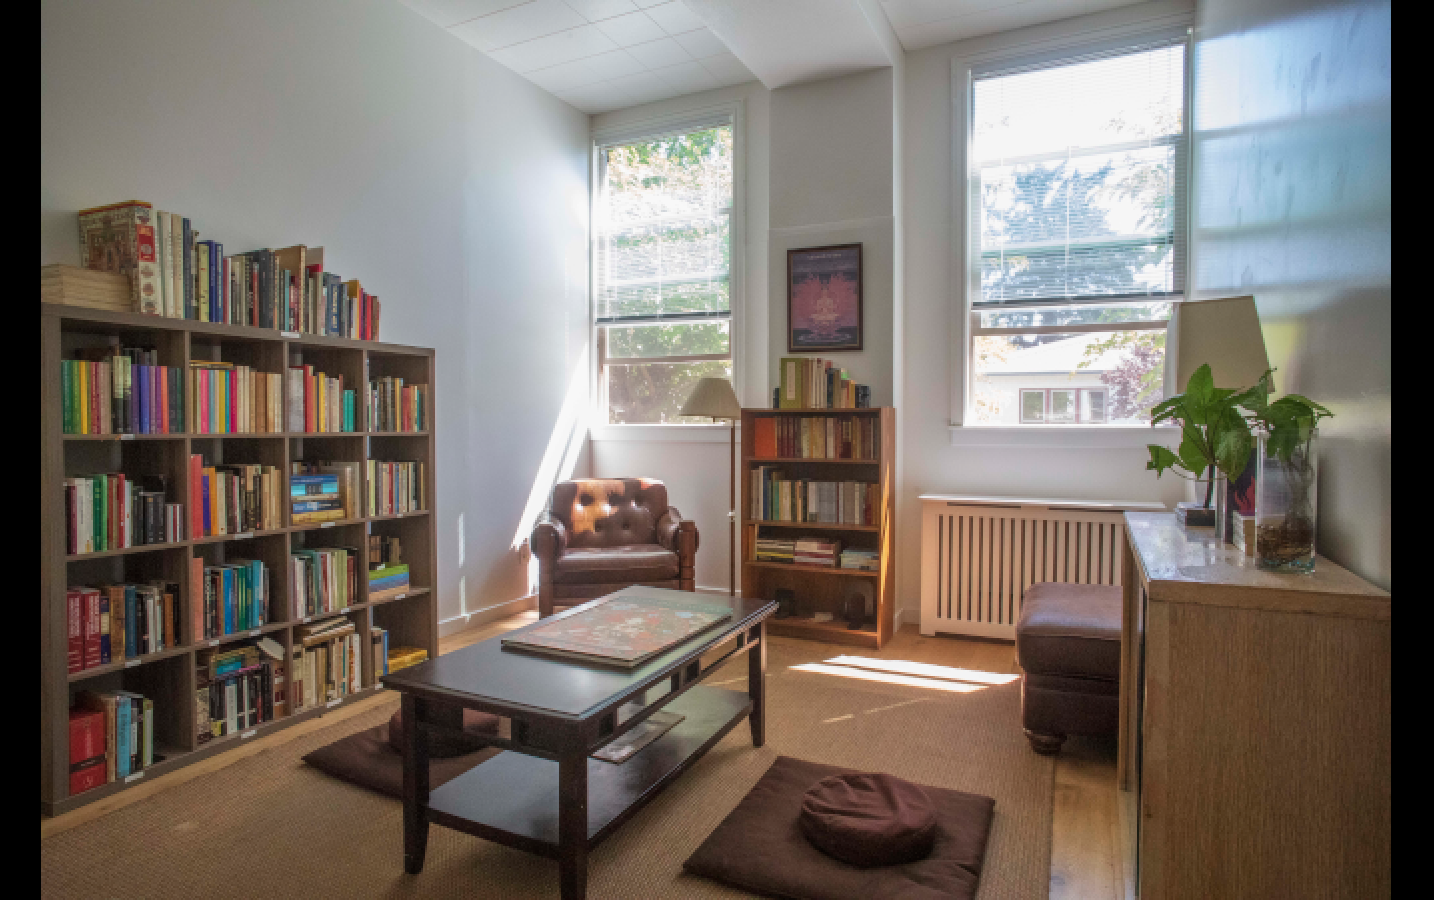 Sudhana Center's brand new reading room! This cozy spot is home to a remarkable collection of books, including many of the classical texts from Buddhist, Chinese, Indian, and Western traditions that form a part of DRBU's curriculum.